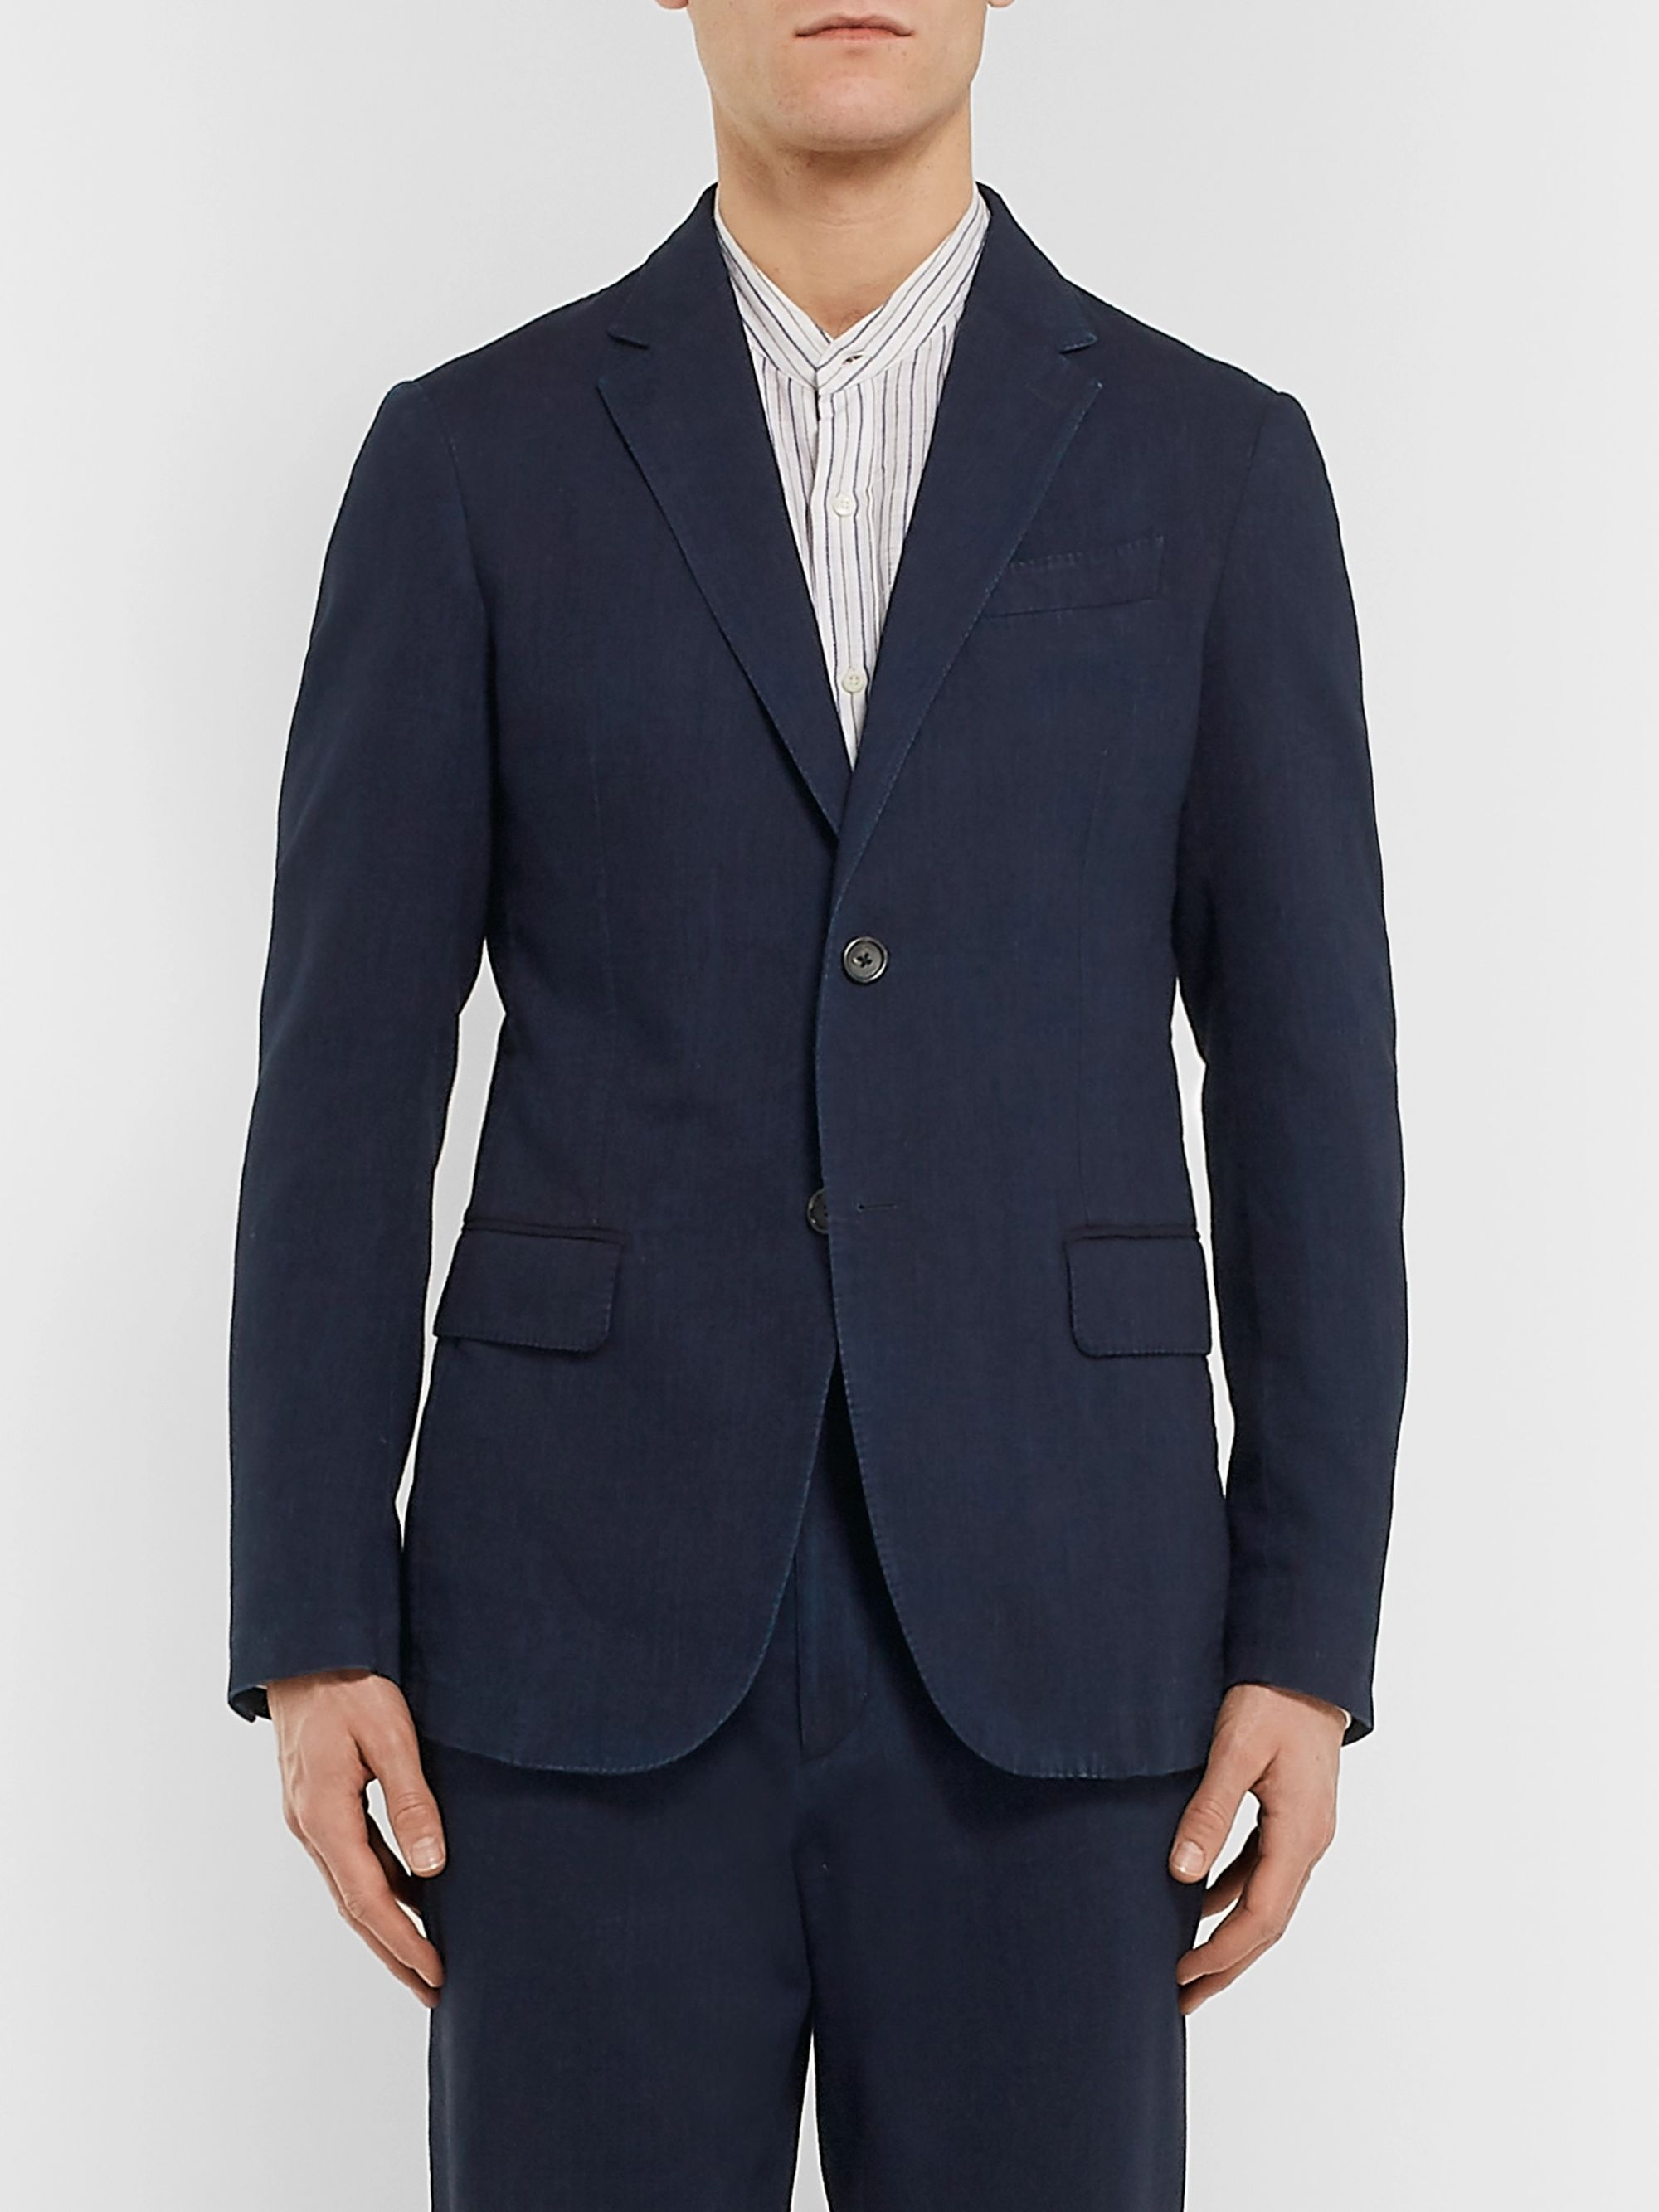 Ermenegildo Zegna Indigo Slim-Fit Unstructured Garment-Dyed Cotton Suit Jacket